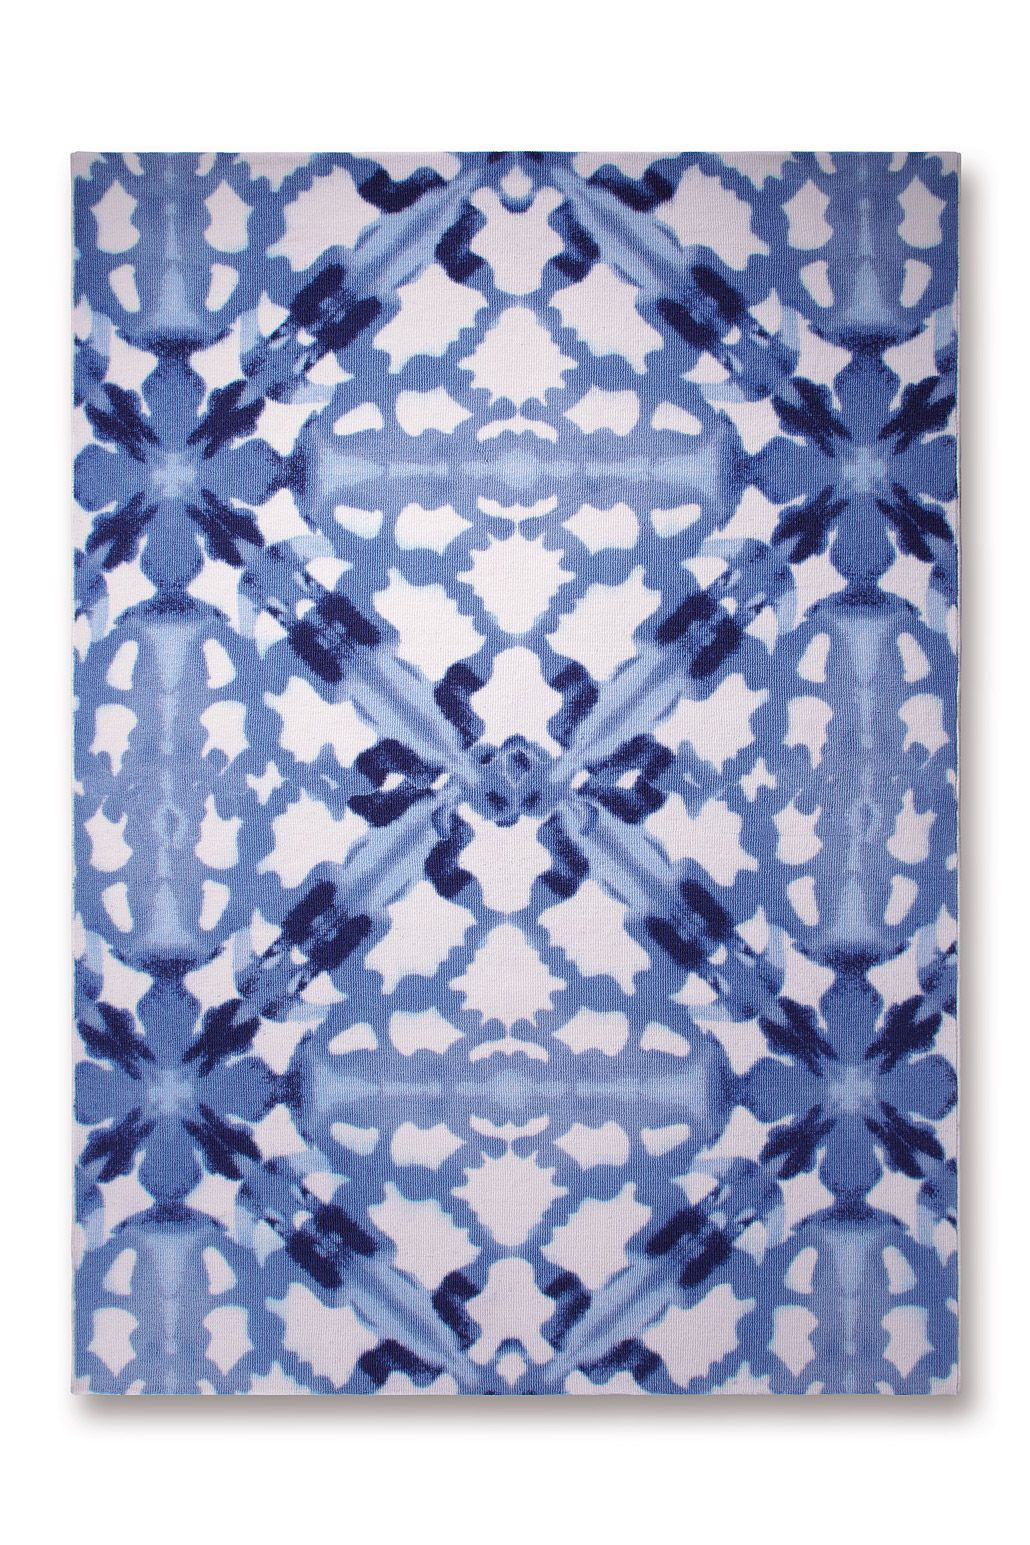 Esprit Teppich Sale Teppich Blue Abstract Casual - Esprit Online-shop | Modern Rugs Blue, Rug Shopping, Abstract Rug